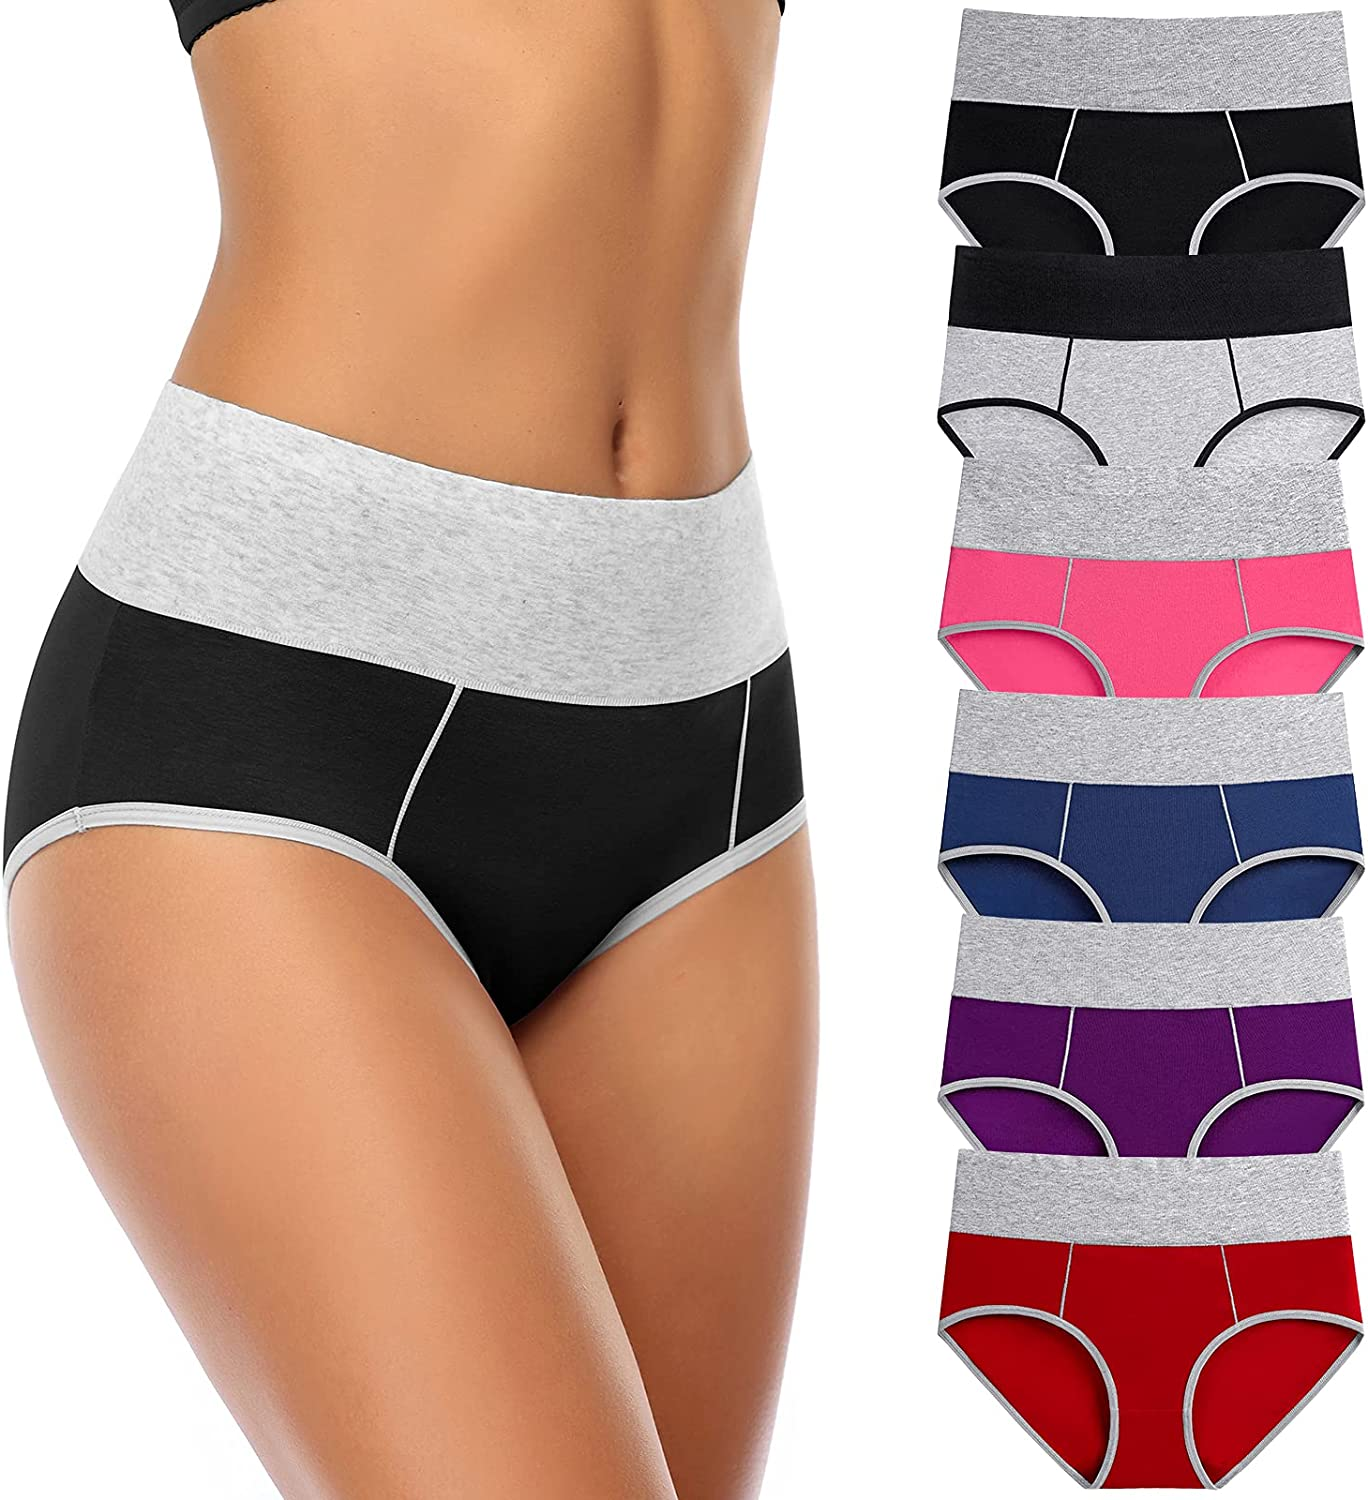 Women's Cotton Underwear High Waisted Ladies Inexpensive Free Shipping New Soft Stretc Panties